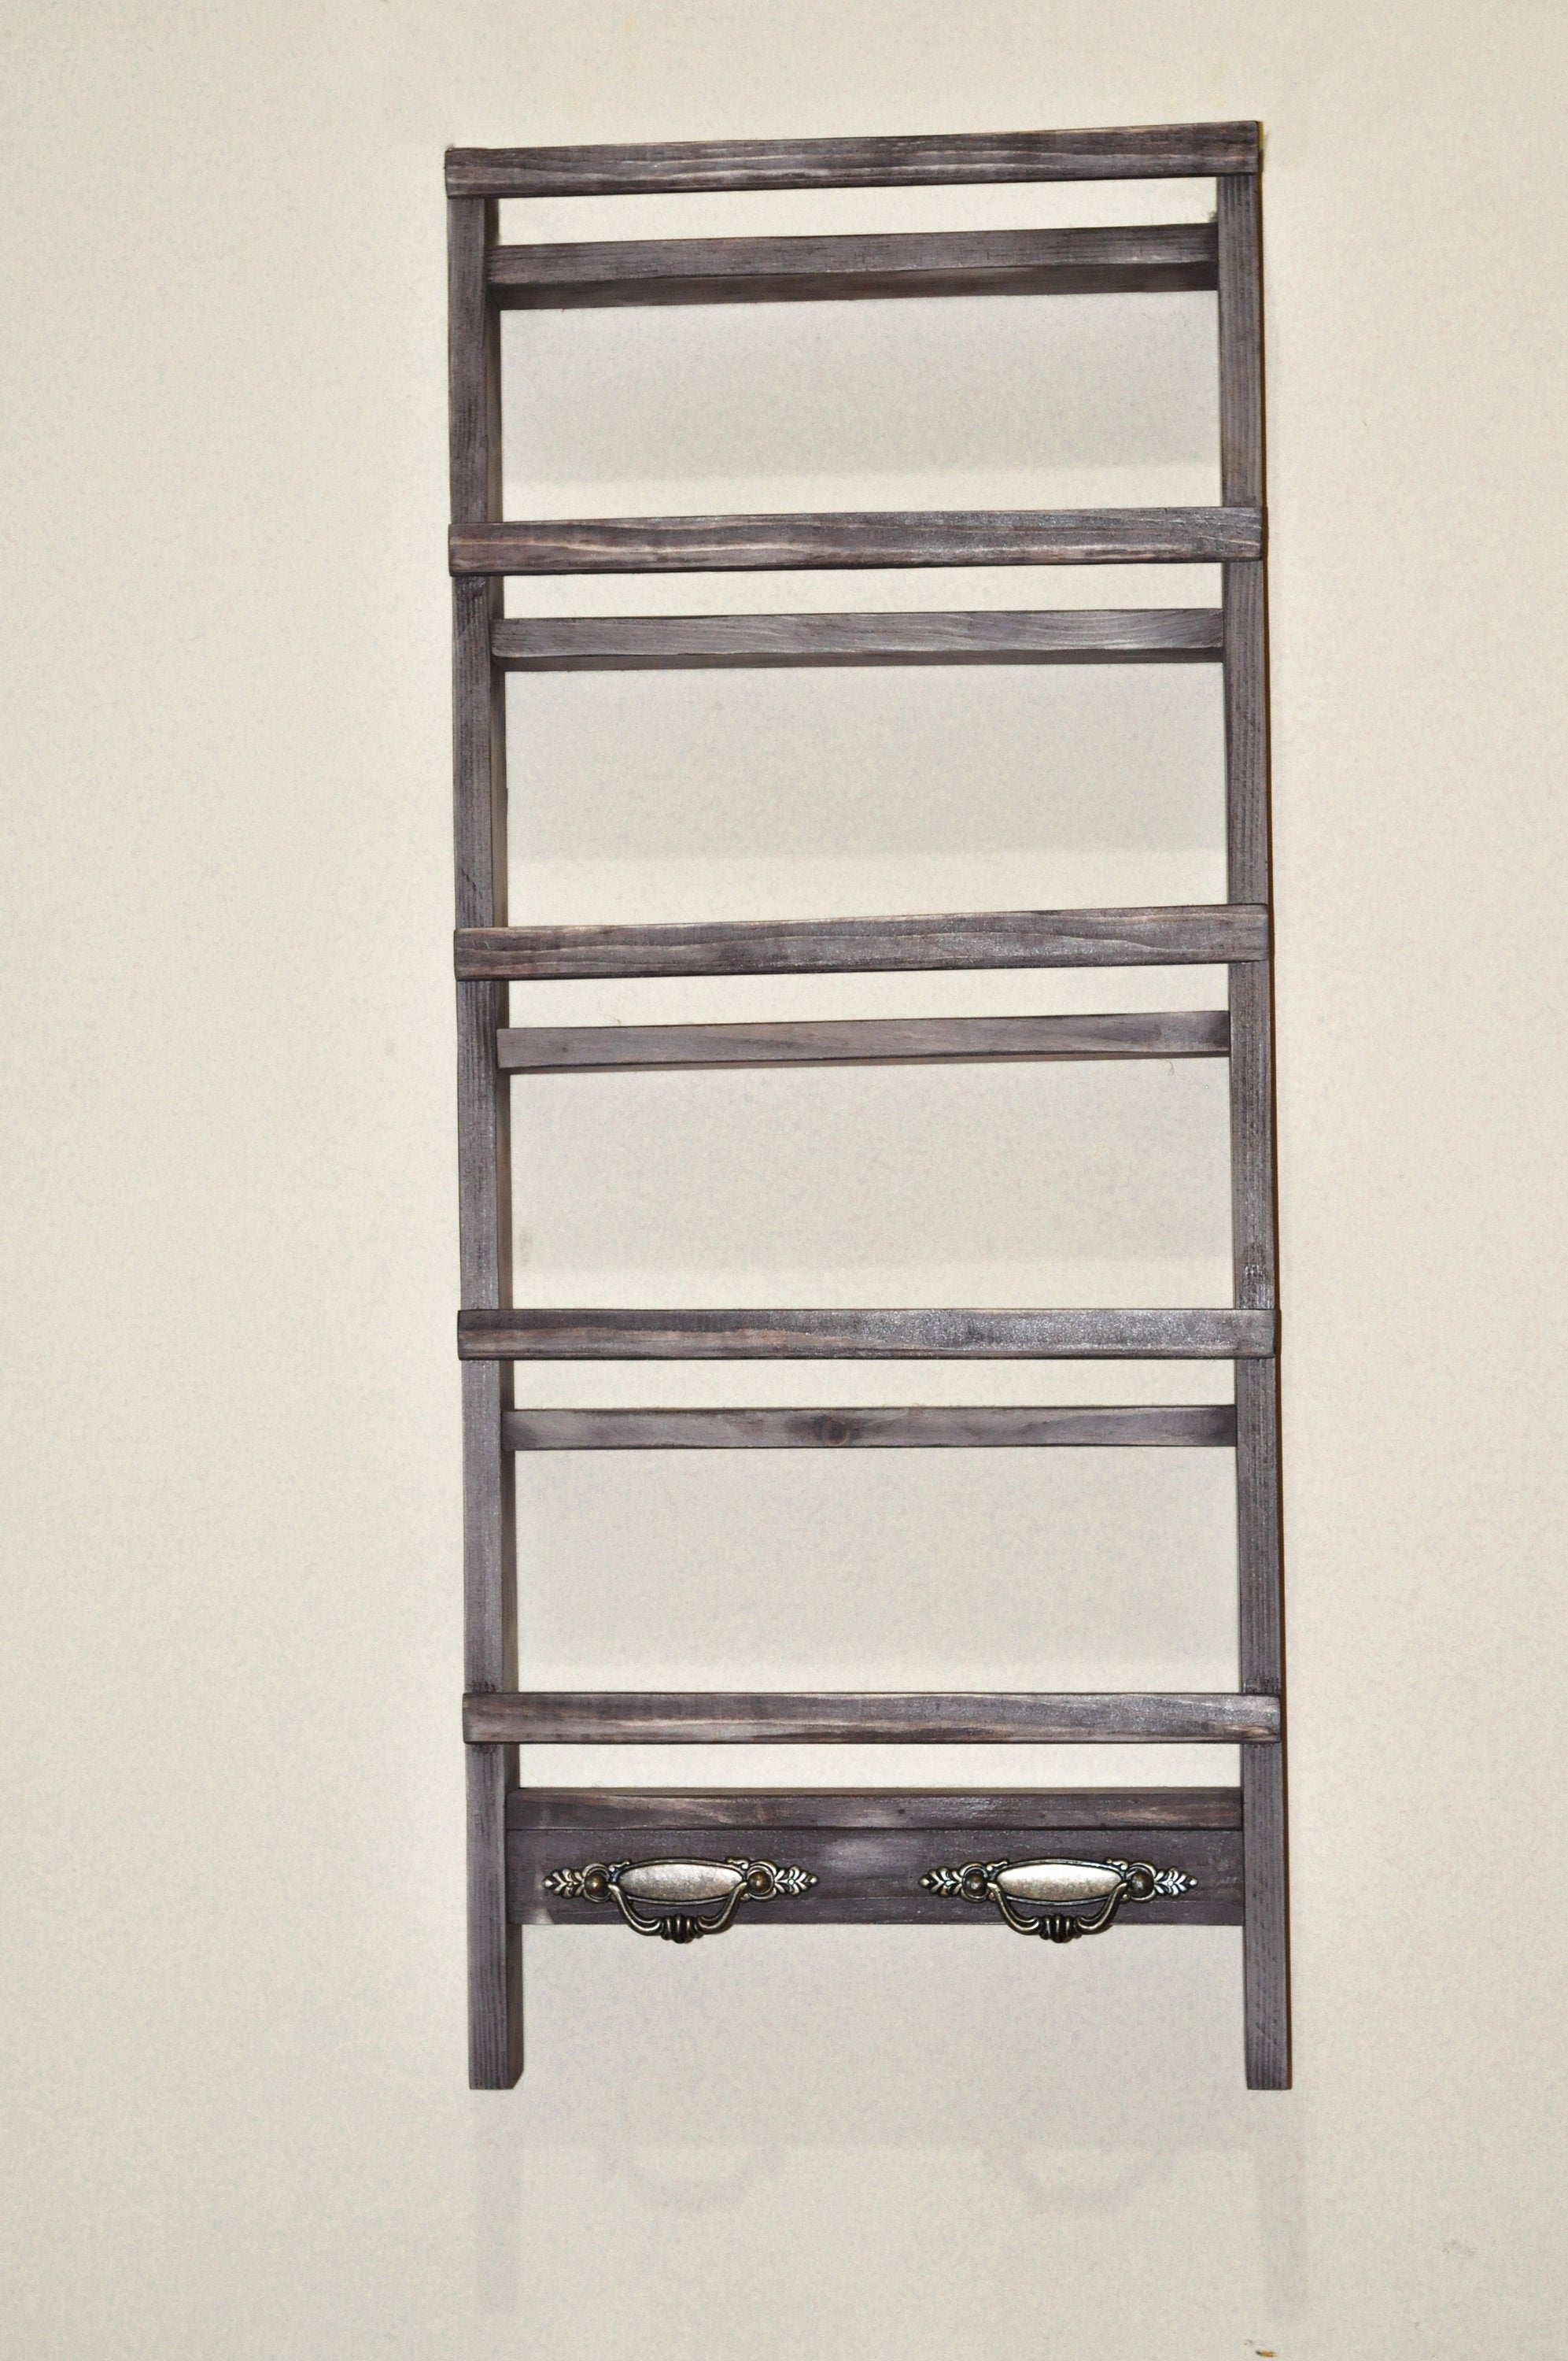 Large Farmhouse Spice Rack With Towel Holders - LocalBeavers